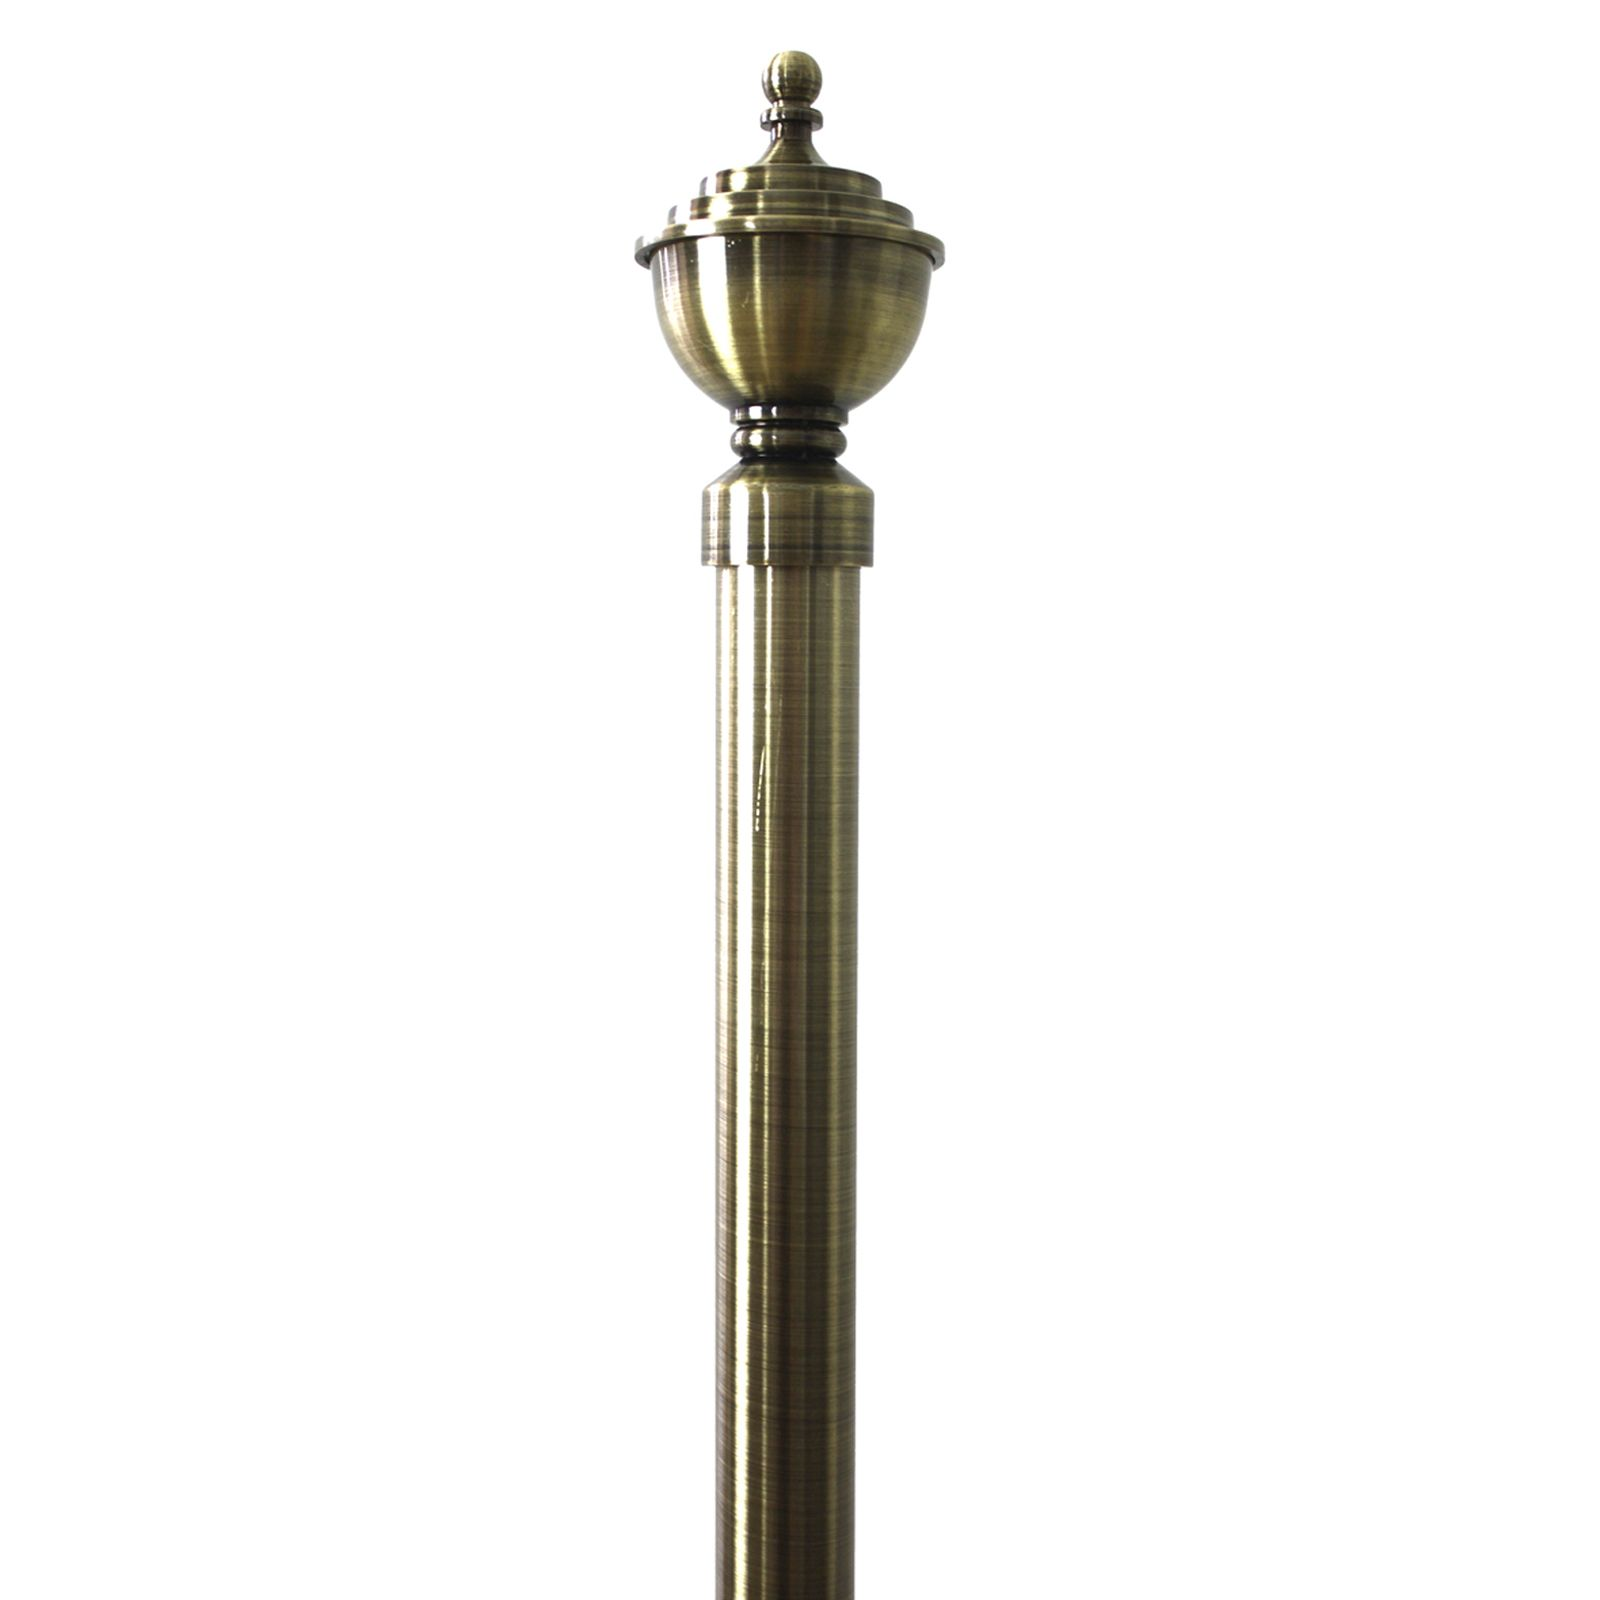 Windoware 130 240cm X 2 5 2 8cm Antique Gold Urn Expanding Curtain Rod Curtain Rods Curtains With Blinds Curtains